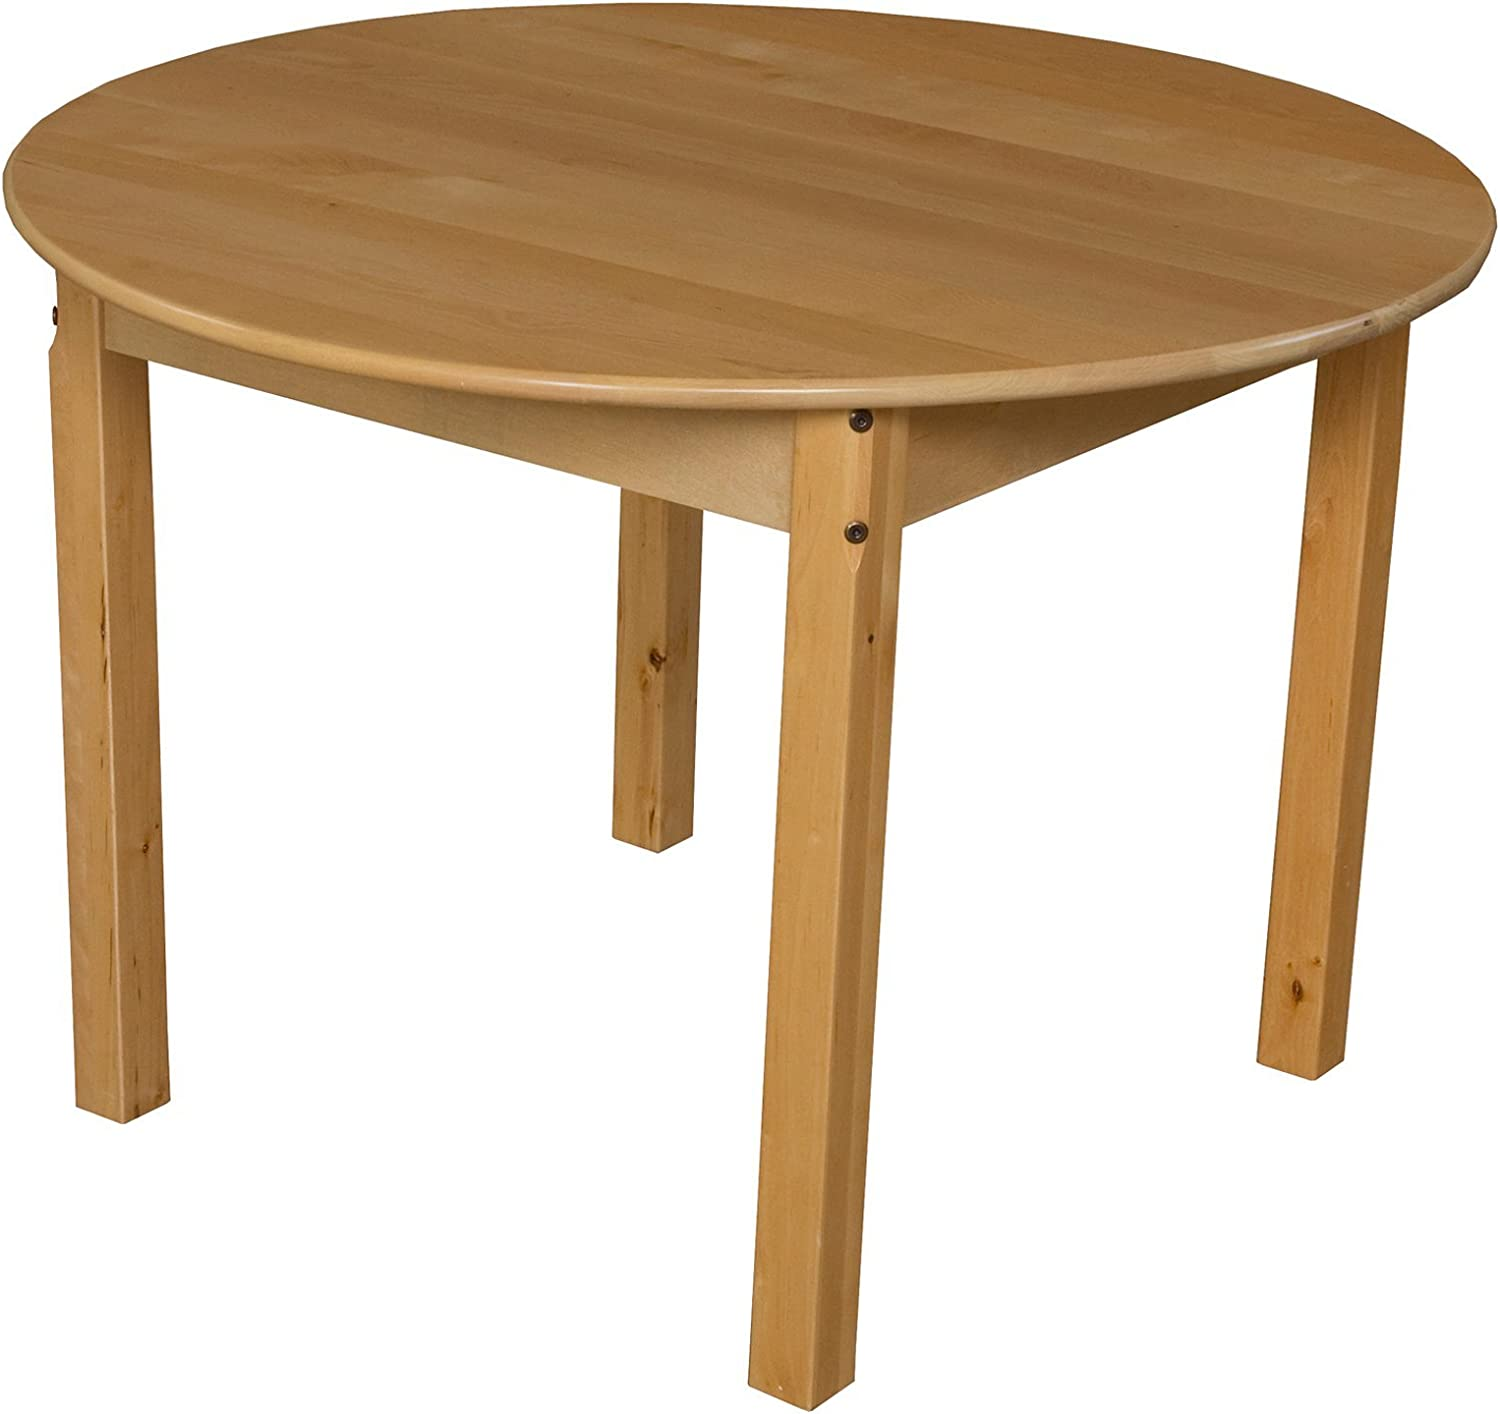 Wood Designs Round 36 in Table